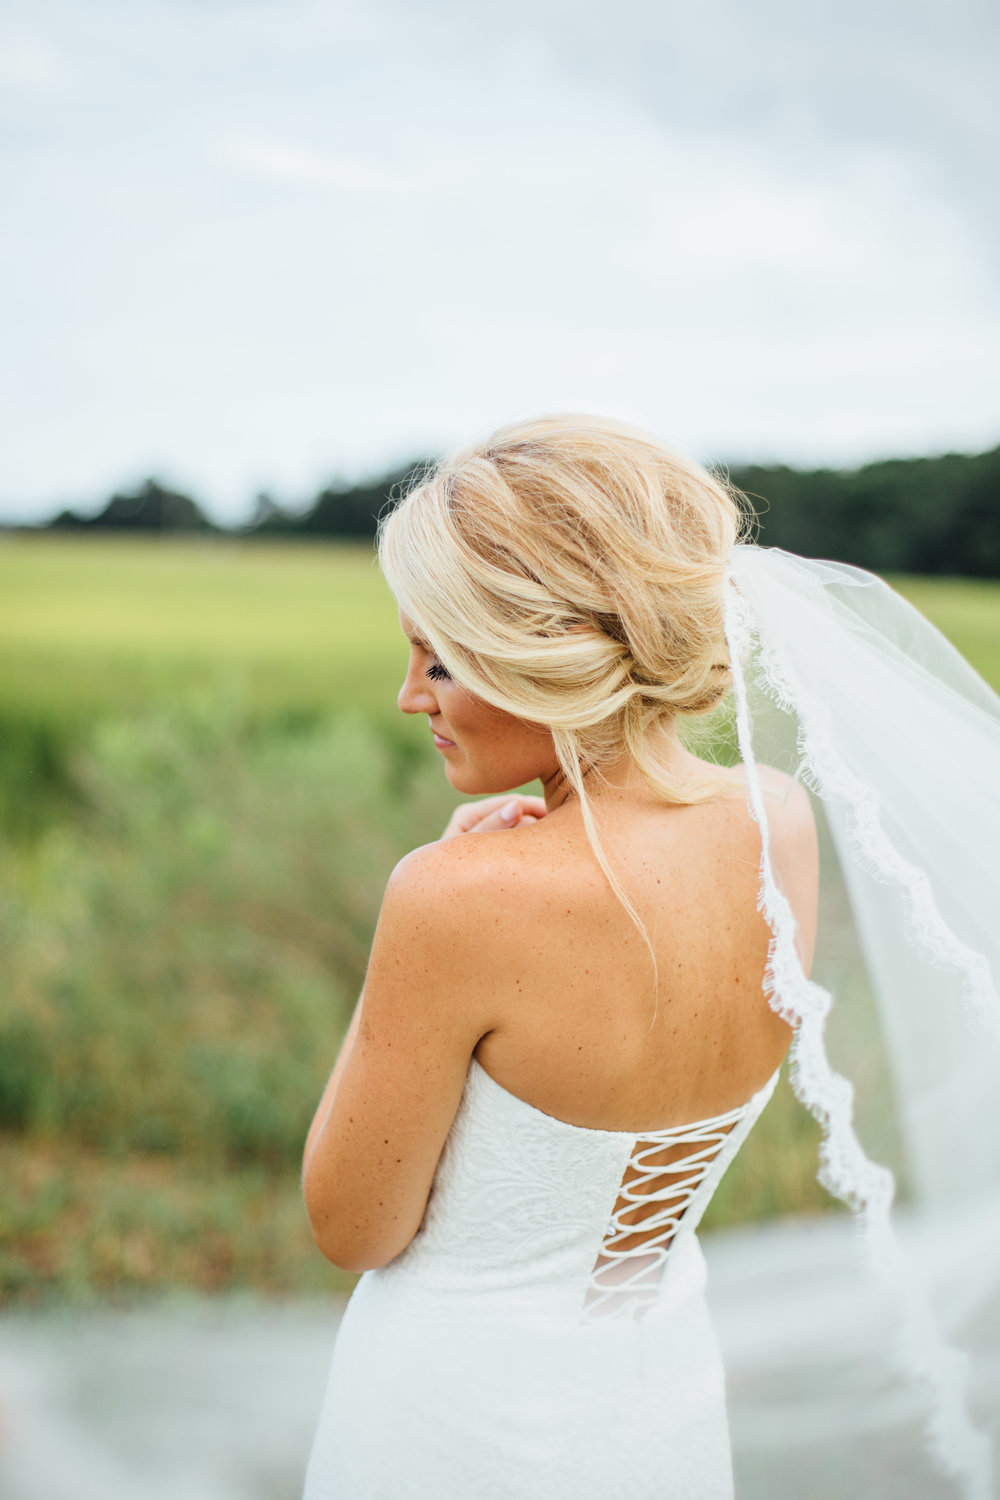 anna-benton-photography-savannah-bridal-boutique-ivory-and-beau-bridal-boutique-ti-adora-7552-lace-wedding-dress-jaclyn-jordan-anne-veil-southern-wedding-savannah-wedding-coastal-wedidng-savannah-wedding-planner-savannah-florist-savannah-weddings-3.jpg